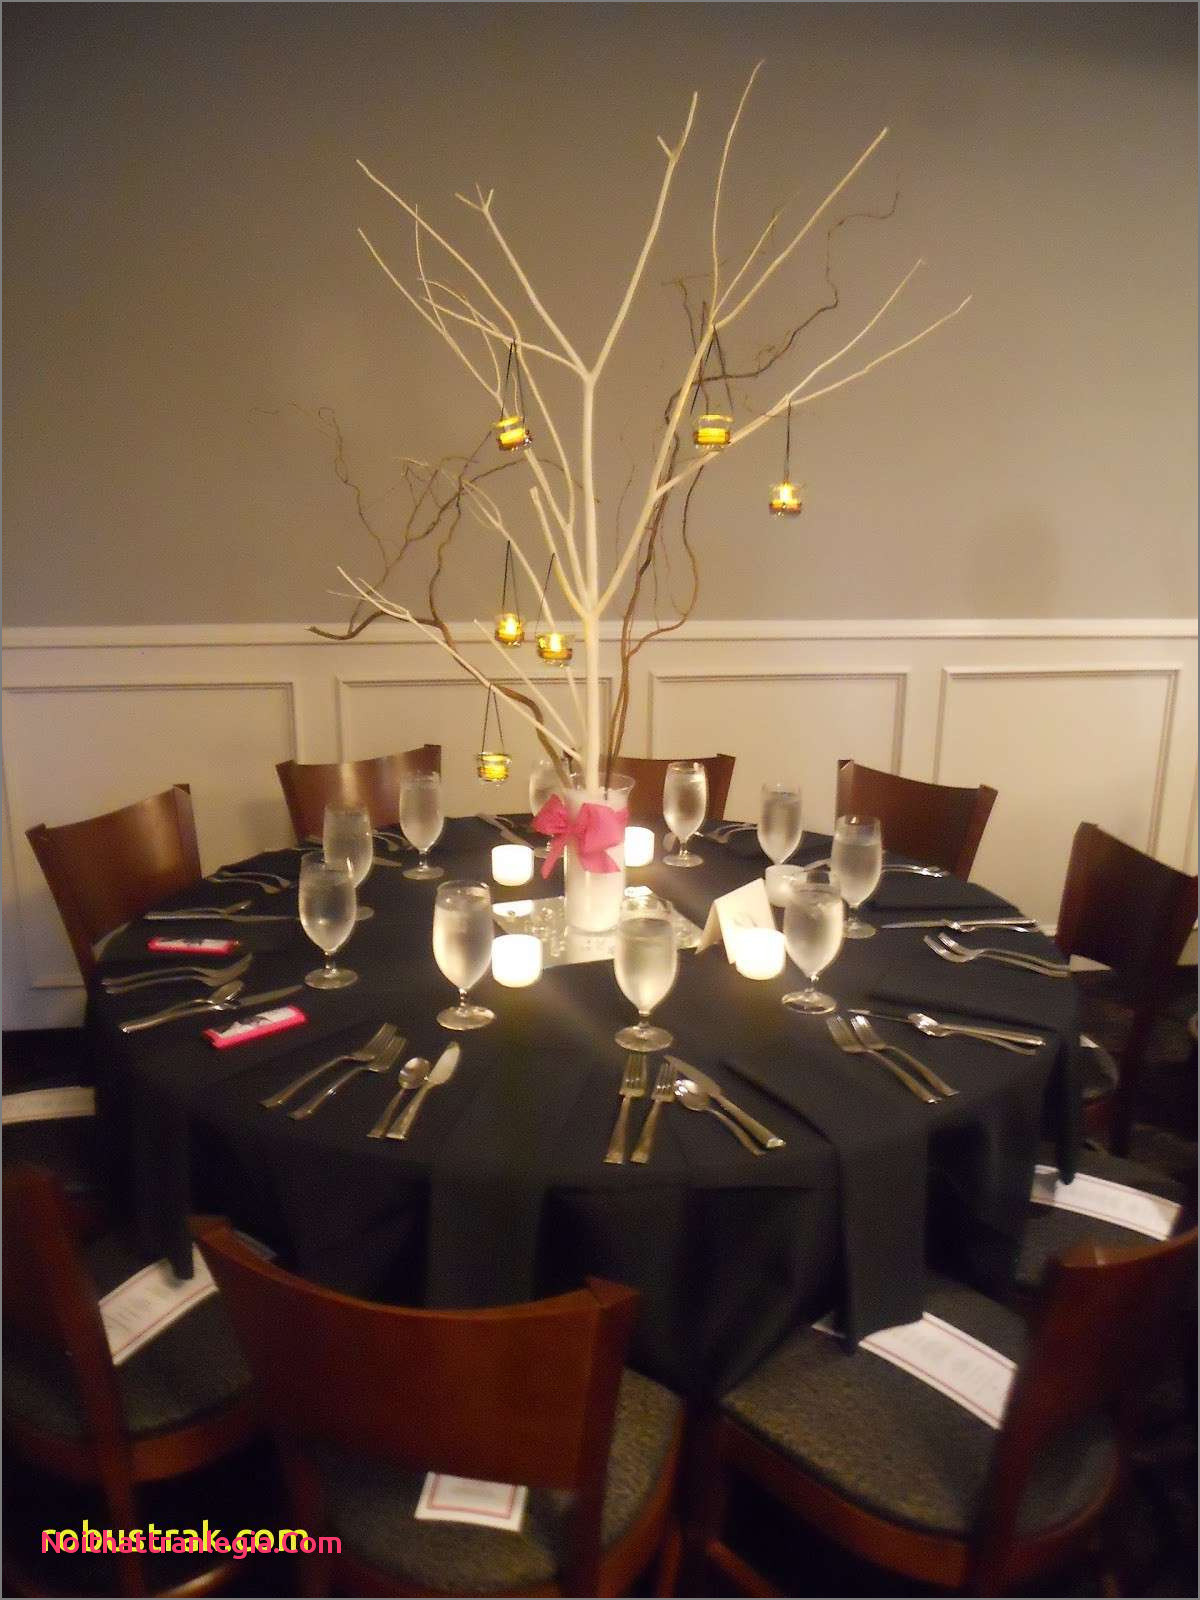 tall square vase wedding centerpieces of 20 wedding vases noithattranlegia vases design intended for dollar tree wedding decorations awesome h vases dollar vase i 0d design centerpieces trees